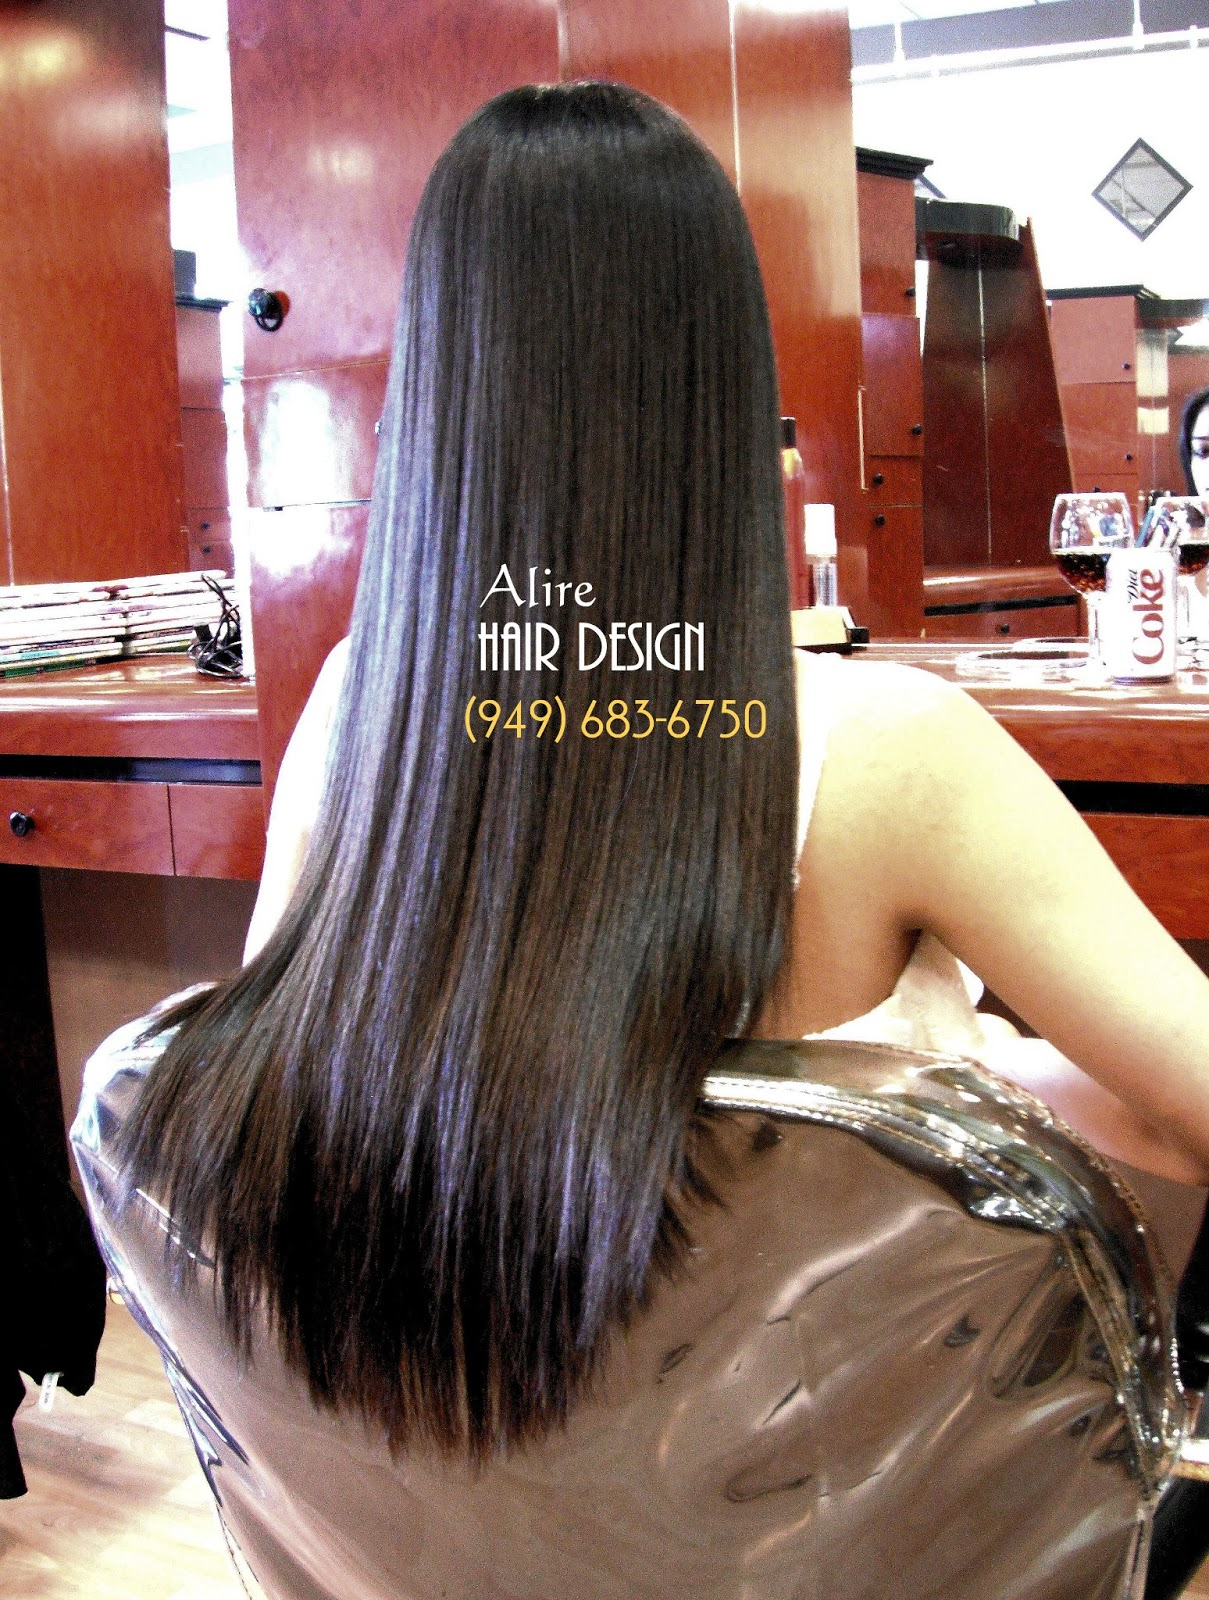 Search results for getting hair washed at salon black hairstyle and haircuts - Salon straightening treatments ...